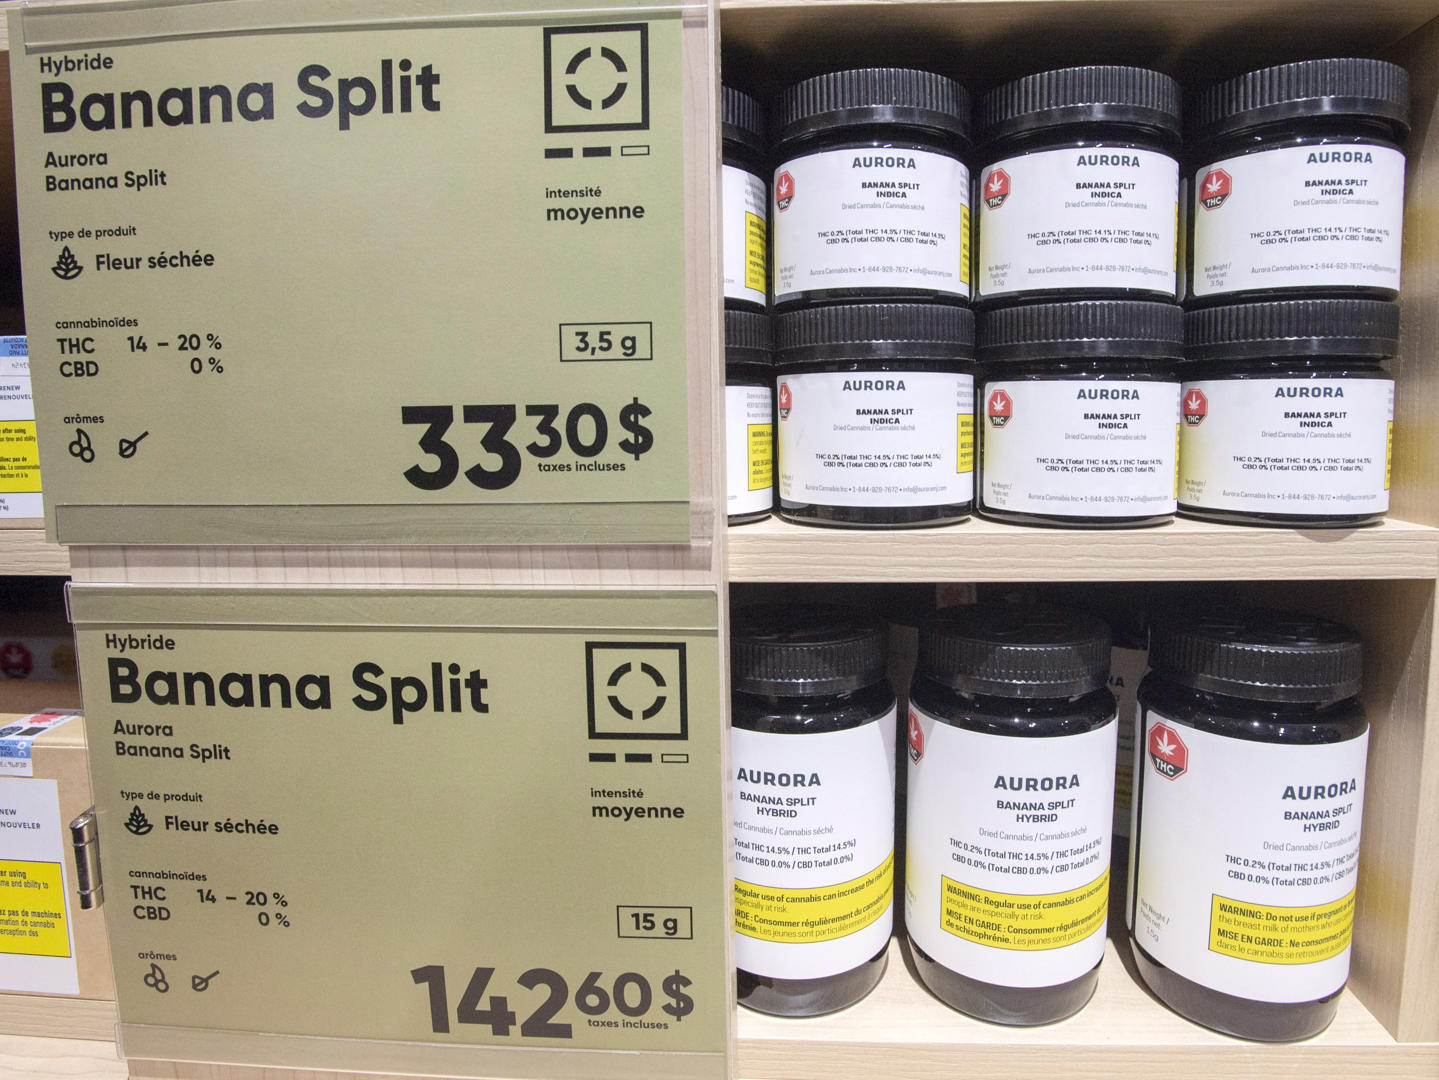 Slide 29 of 31: Cannabis products are seen on the shelves at a new Societe Quebecoise du Cannabis (SQDC) store during a media preview Tuesday, October 16, 2018 in Montreal.